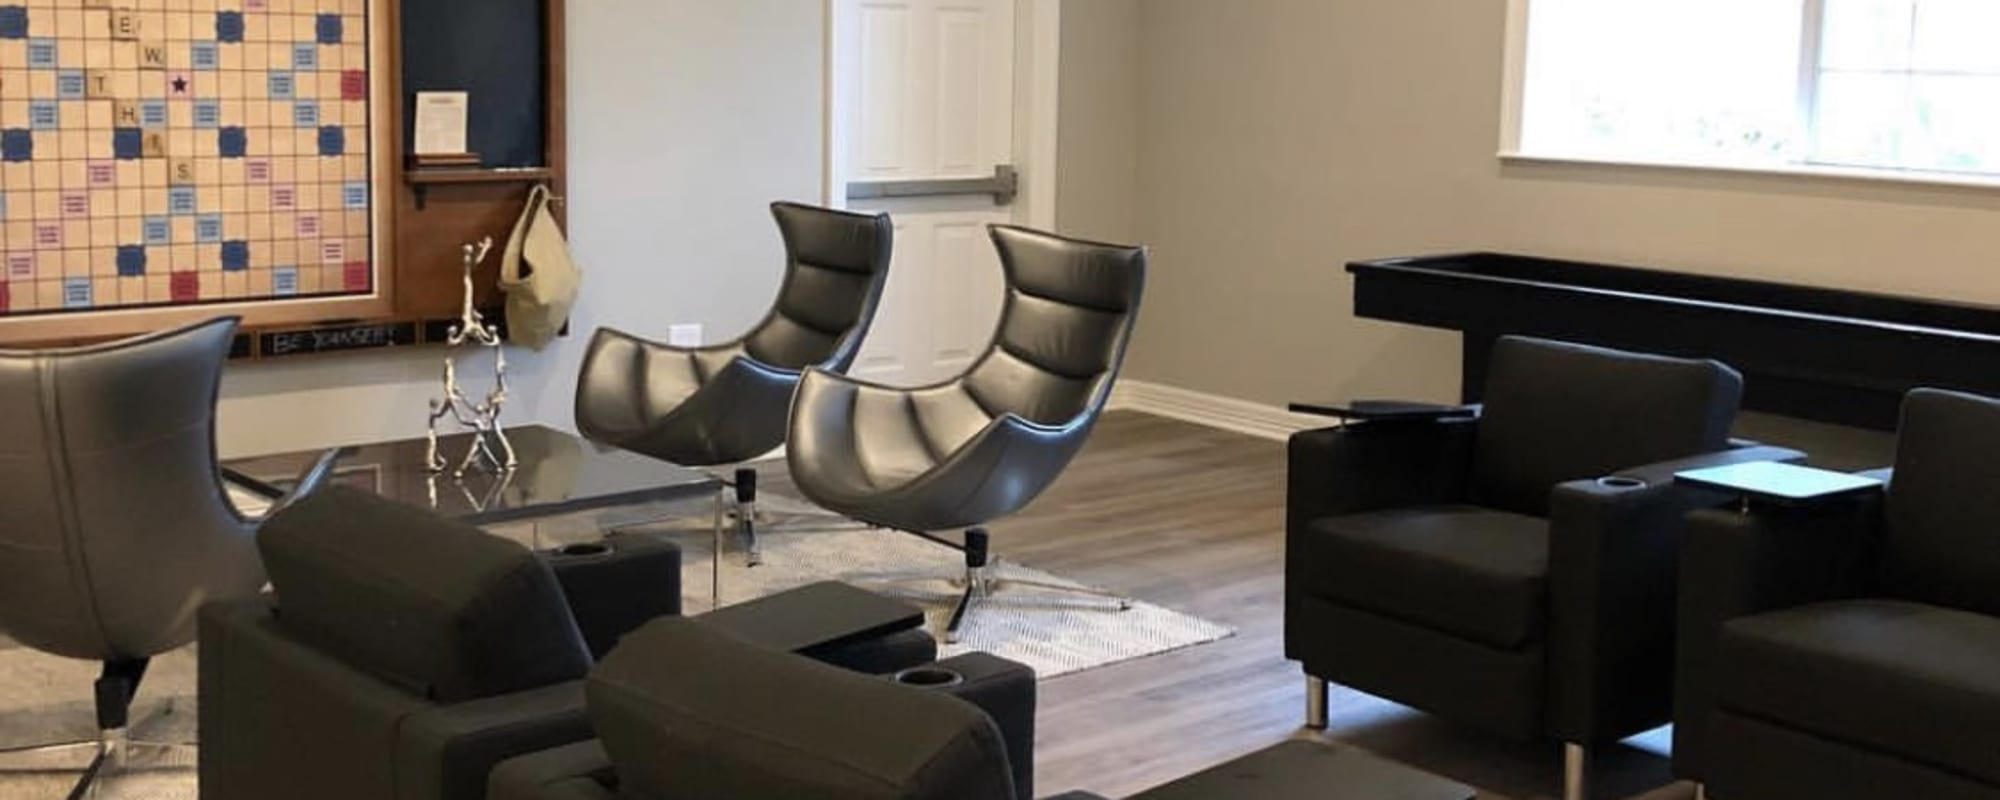 Community lounge for residents at The View at Encino Commons in San Antonio, Texas